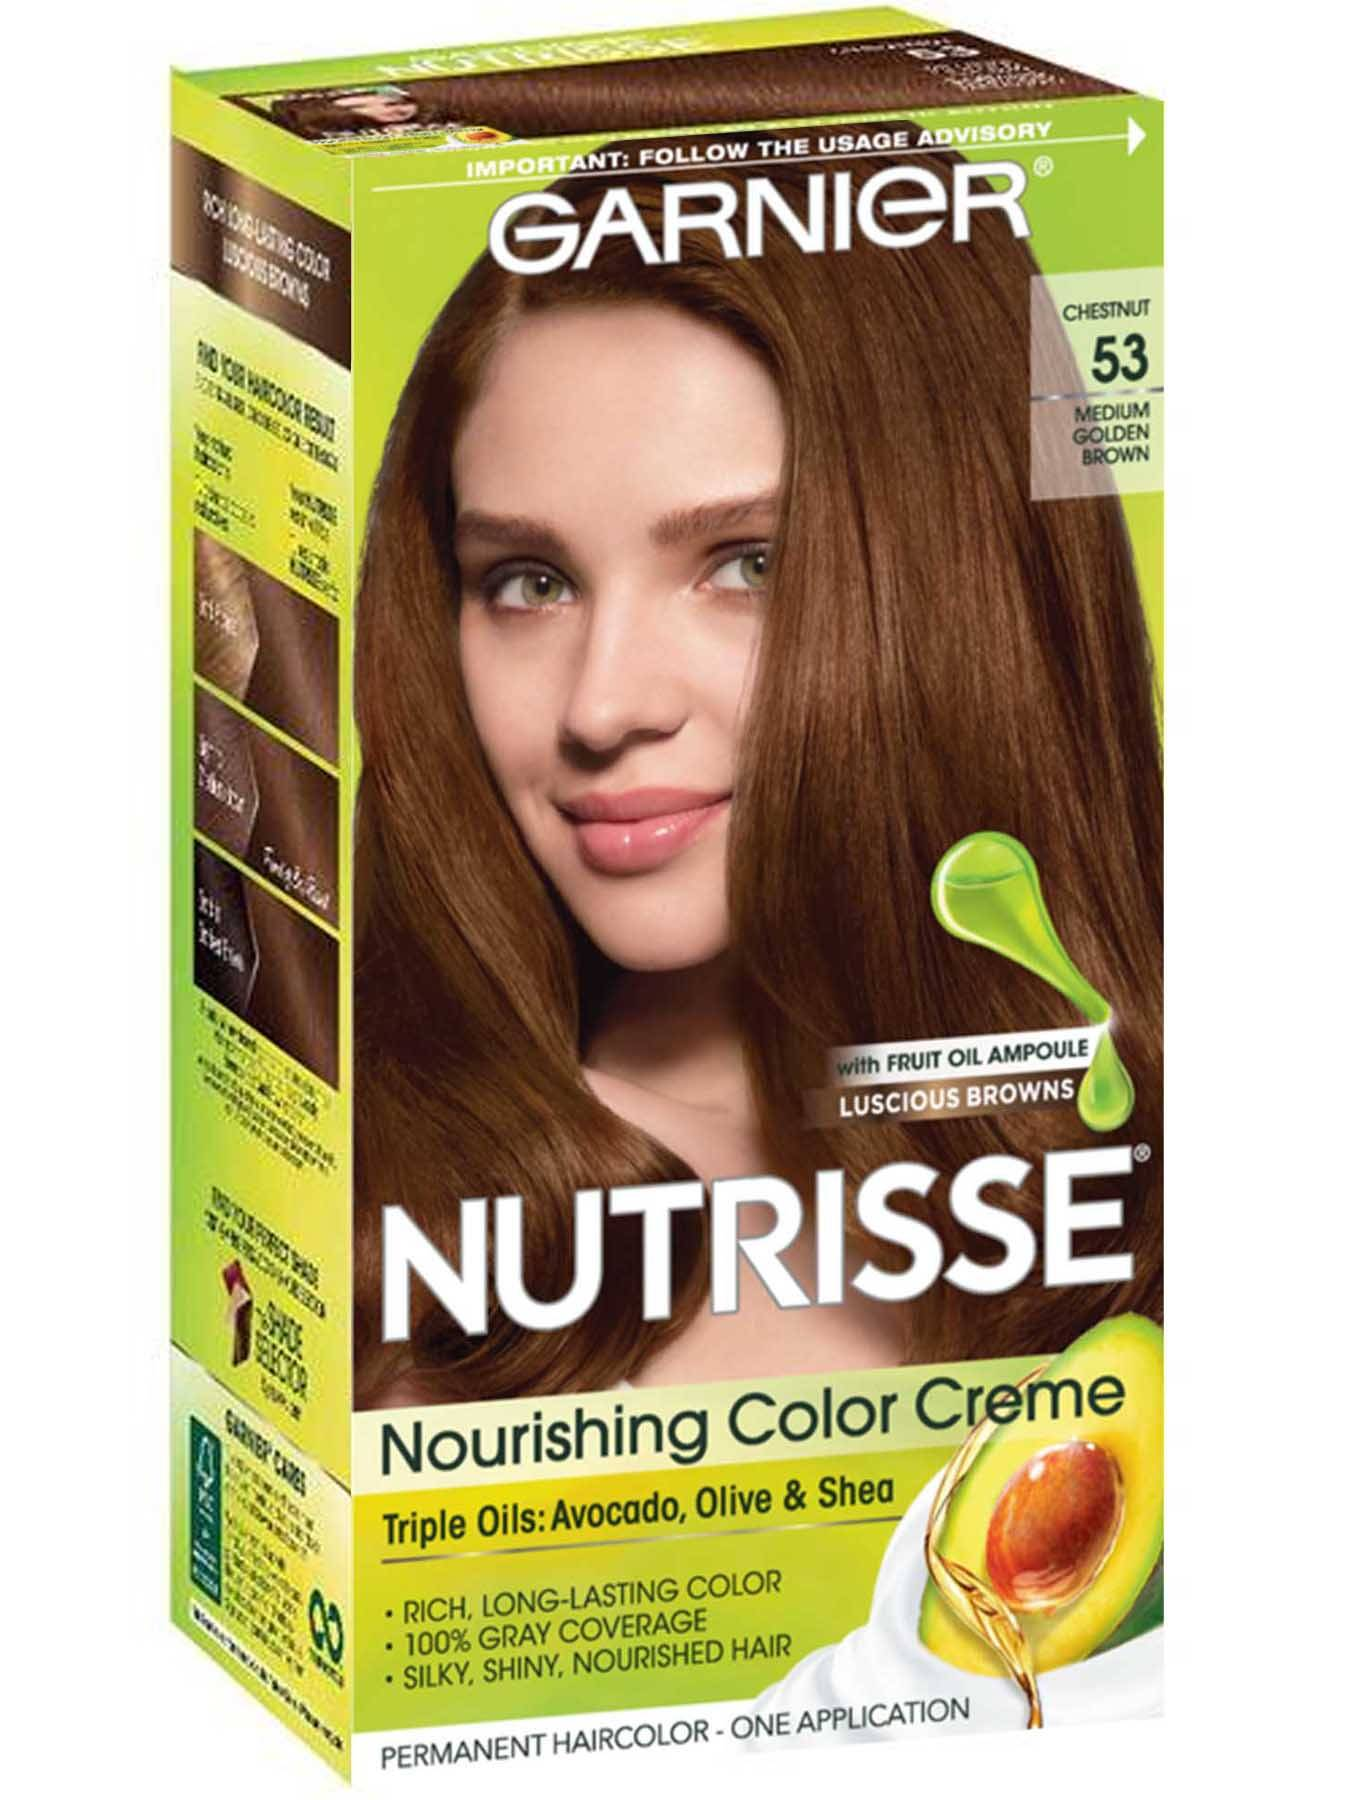 Nutrisse Nourishing Color Creme - Medium Golden Brown 53 - Garnier